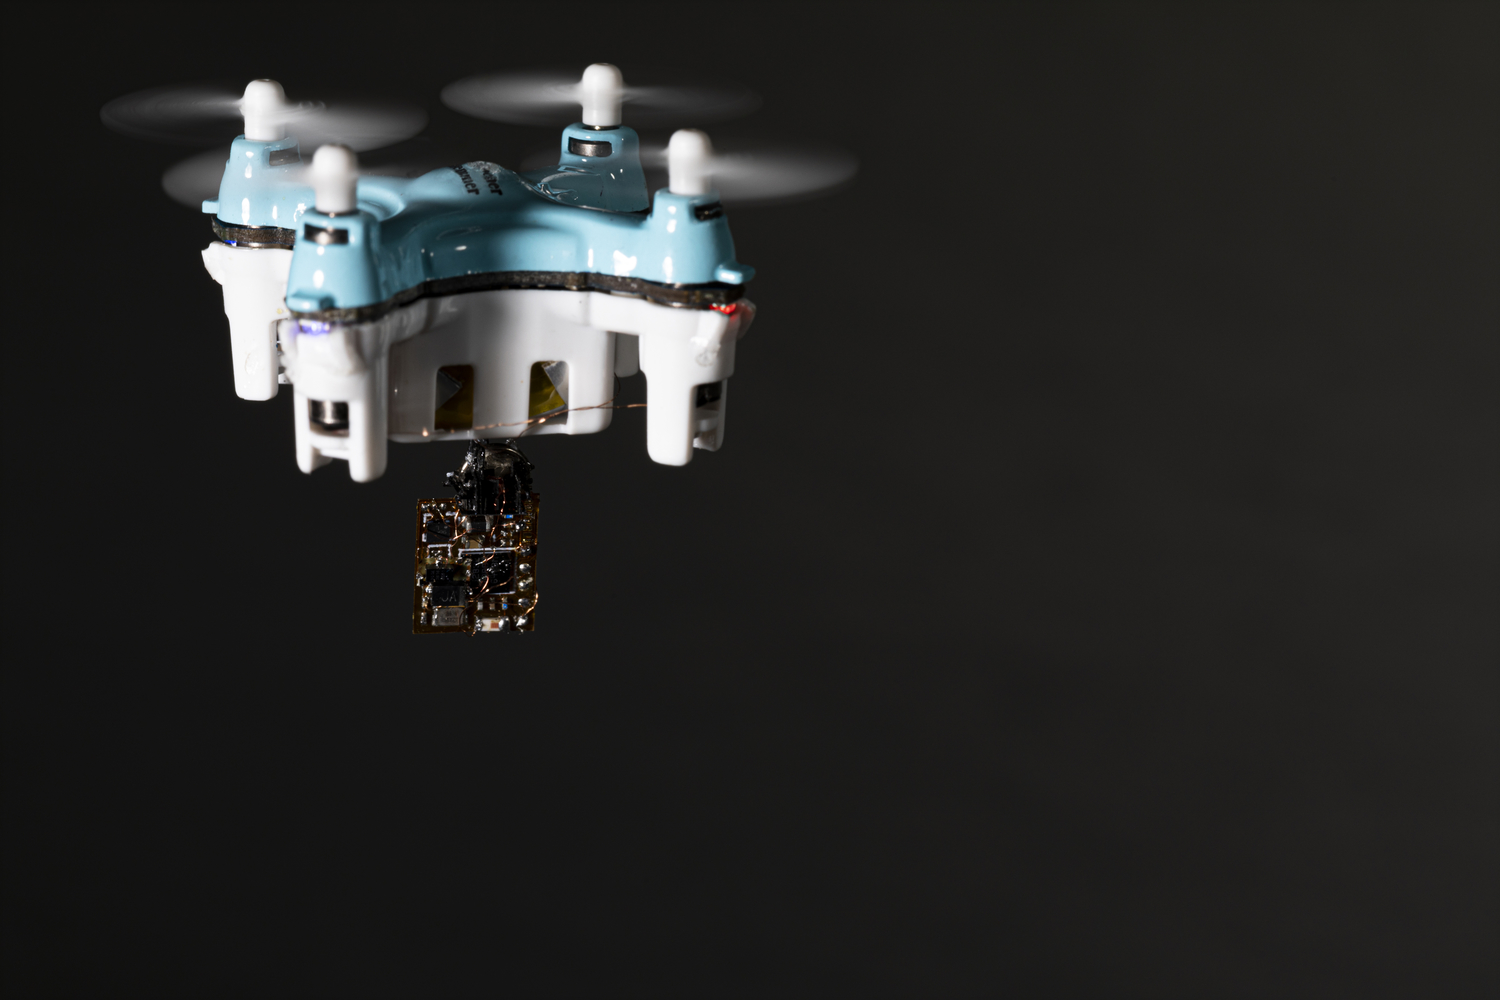 A small drone with four rotor blades carries the tiny sensor